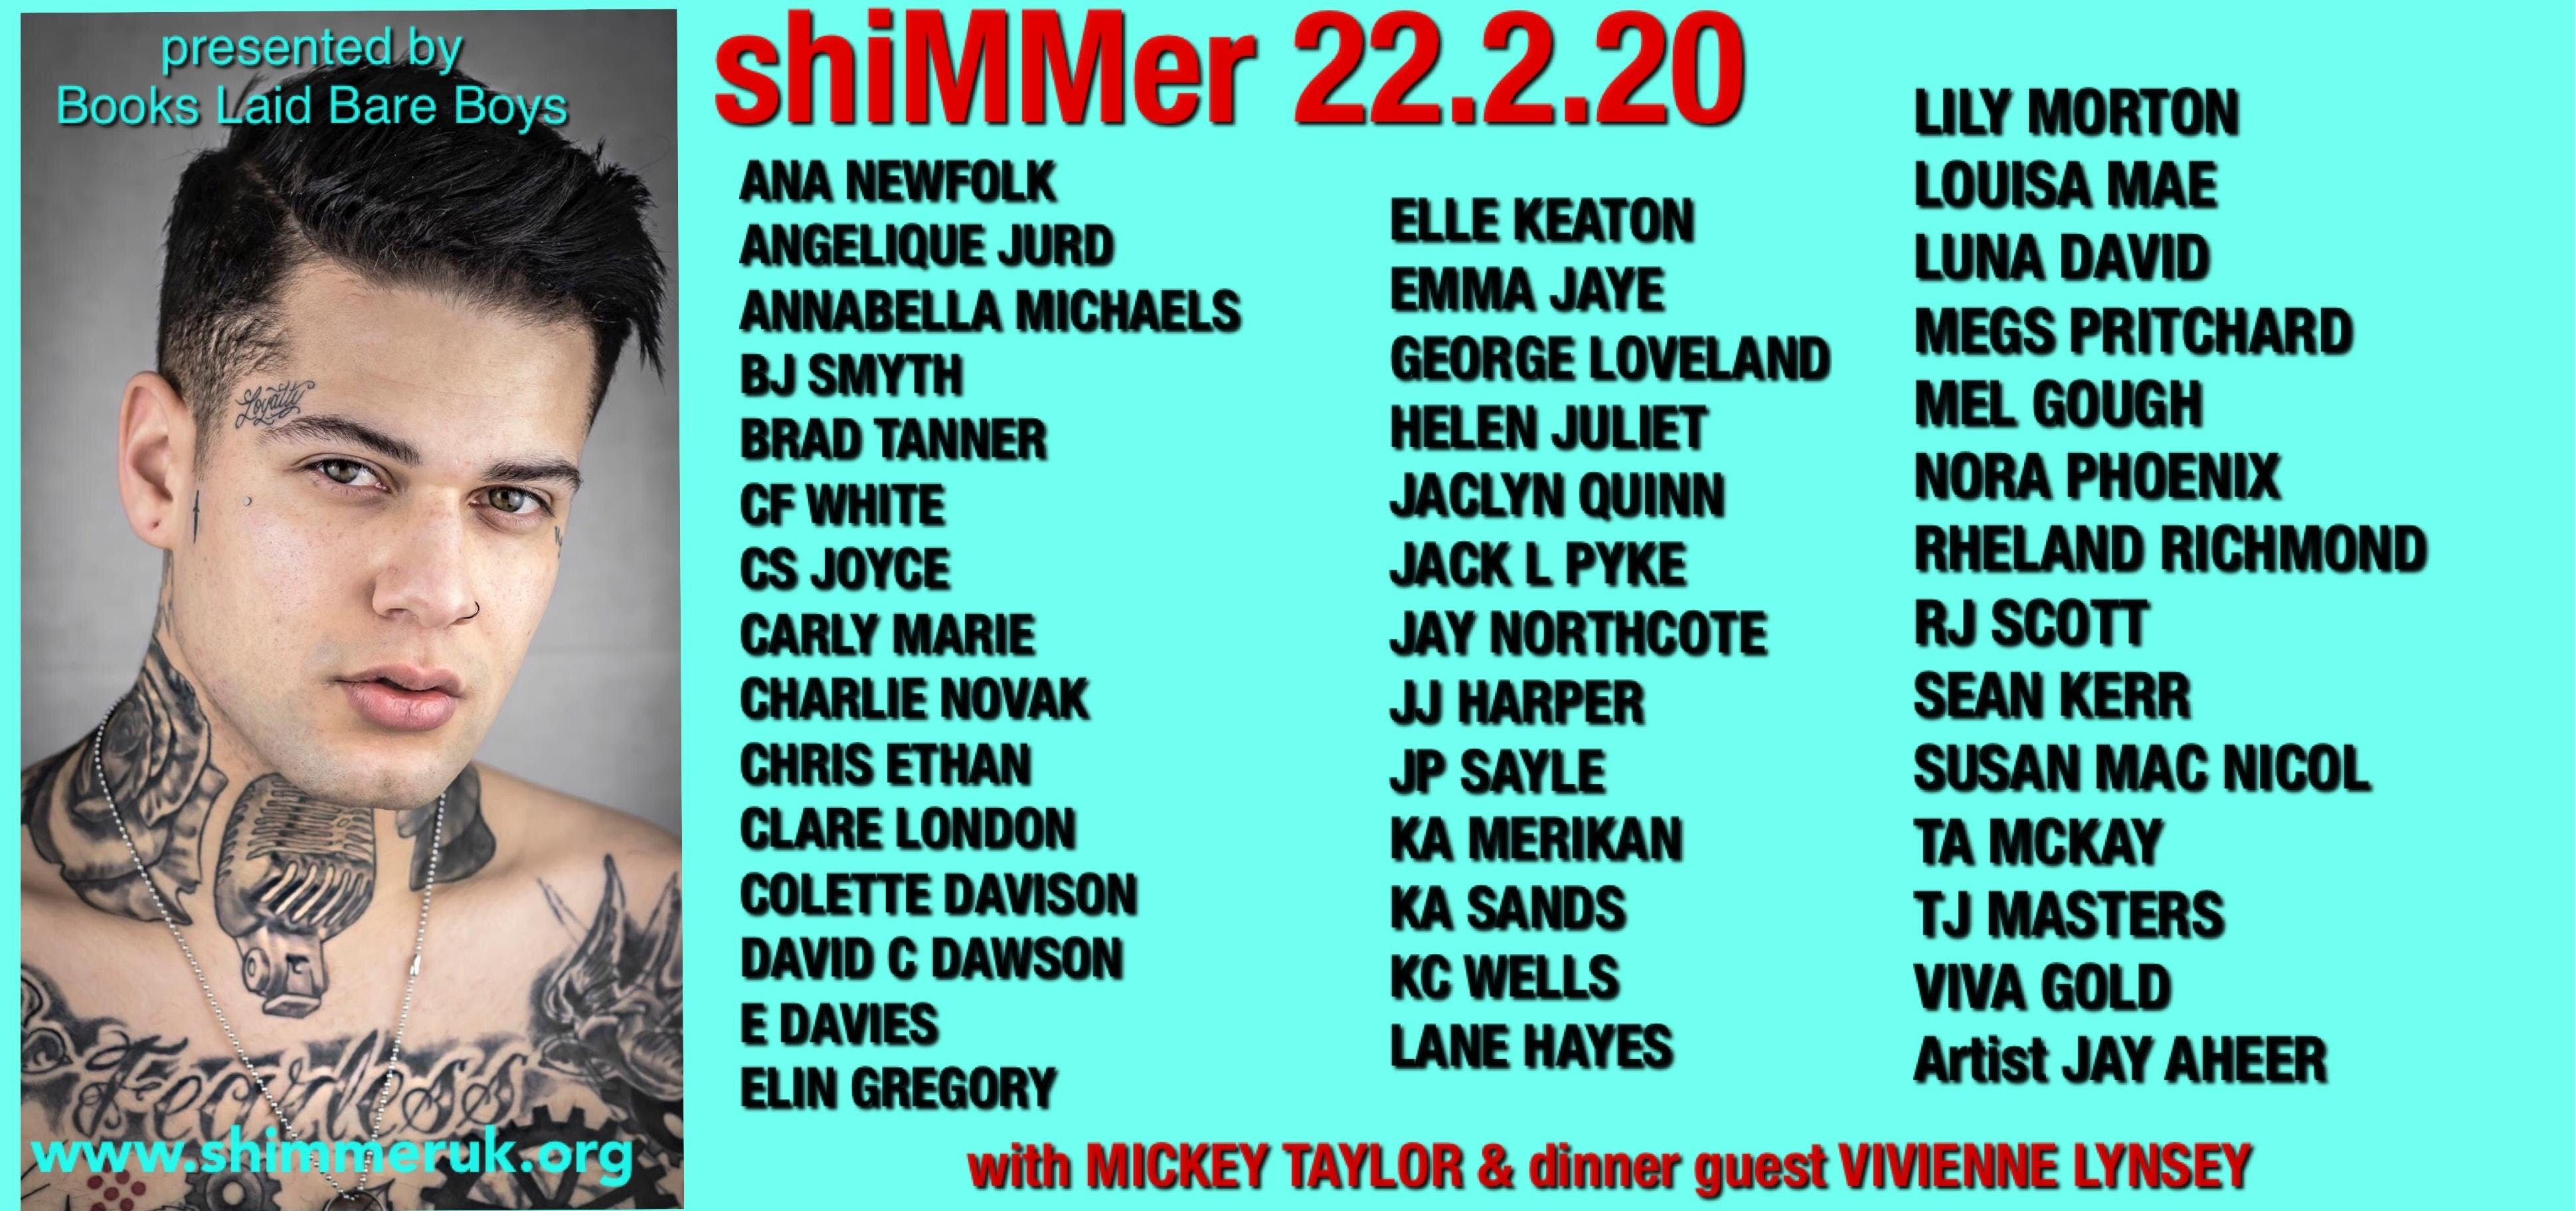 Romance Author Signing Events 2020.Shimmer 2020 Mm Uk Author Event